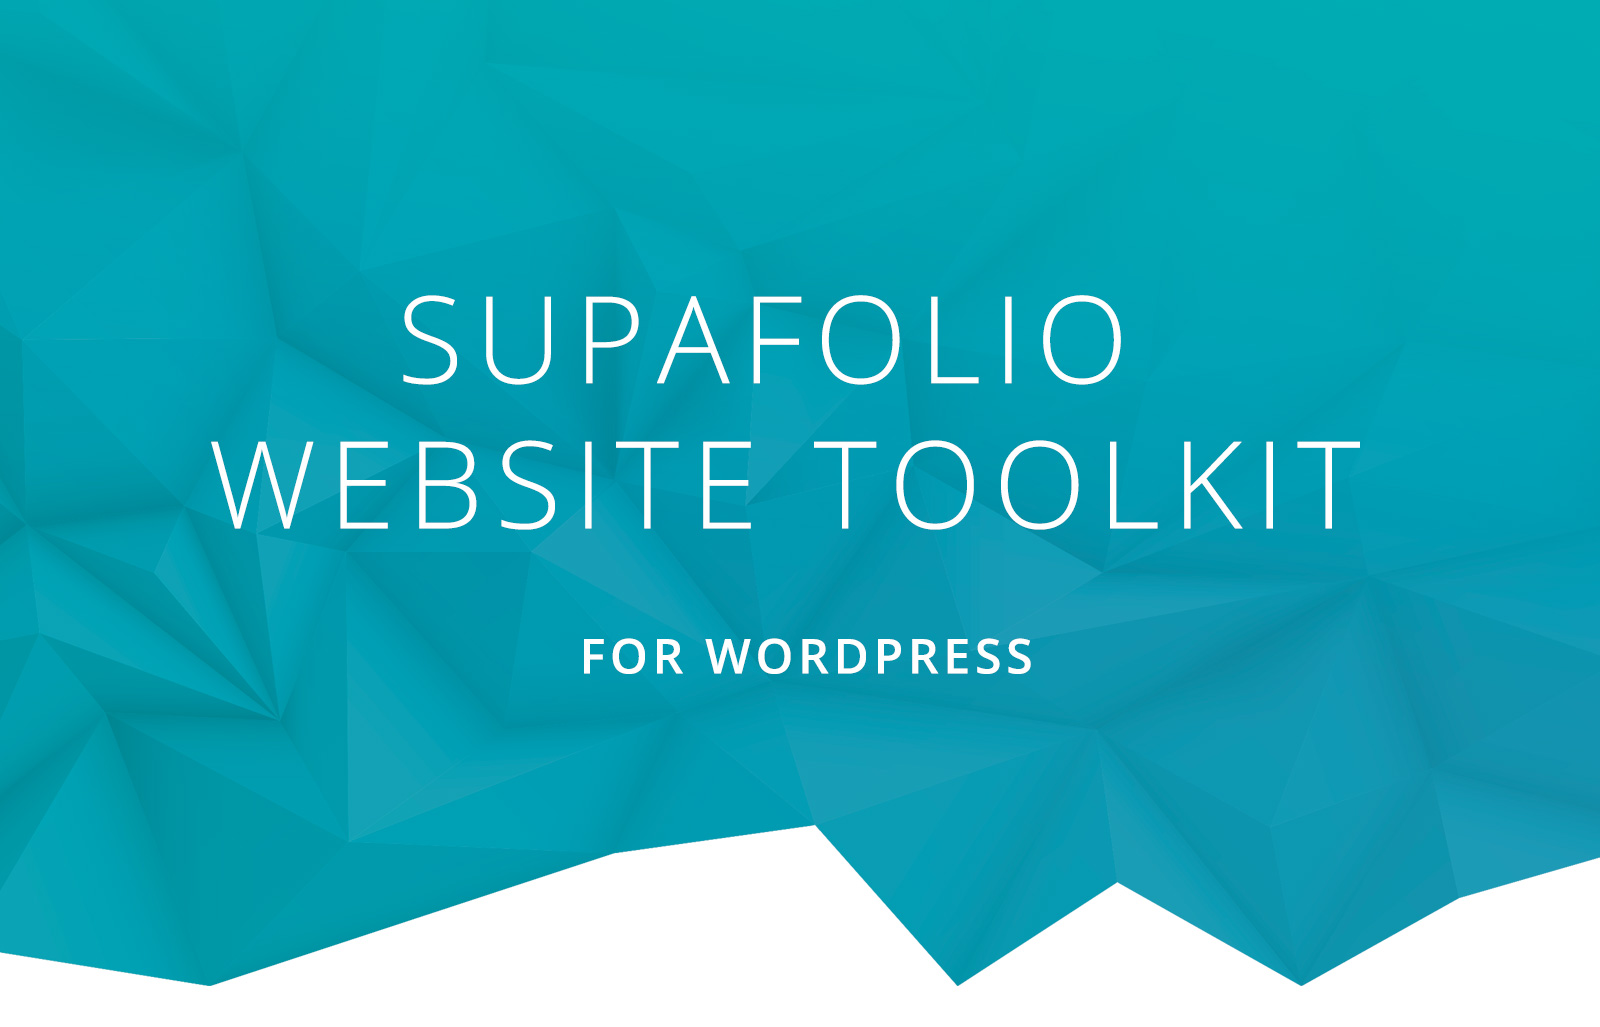 Easily build beautiful, responsive publisher WordPress pages in minutes, with live book metadata with the new Supafolio Website Toolkit